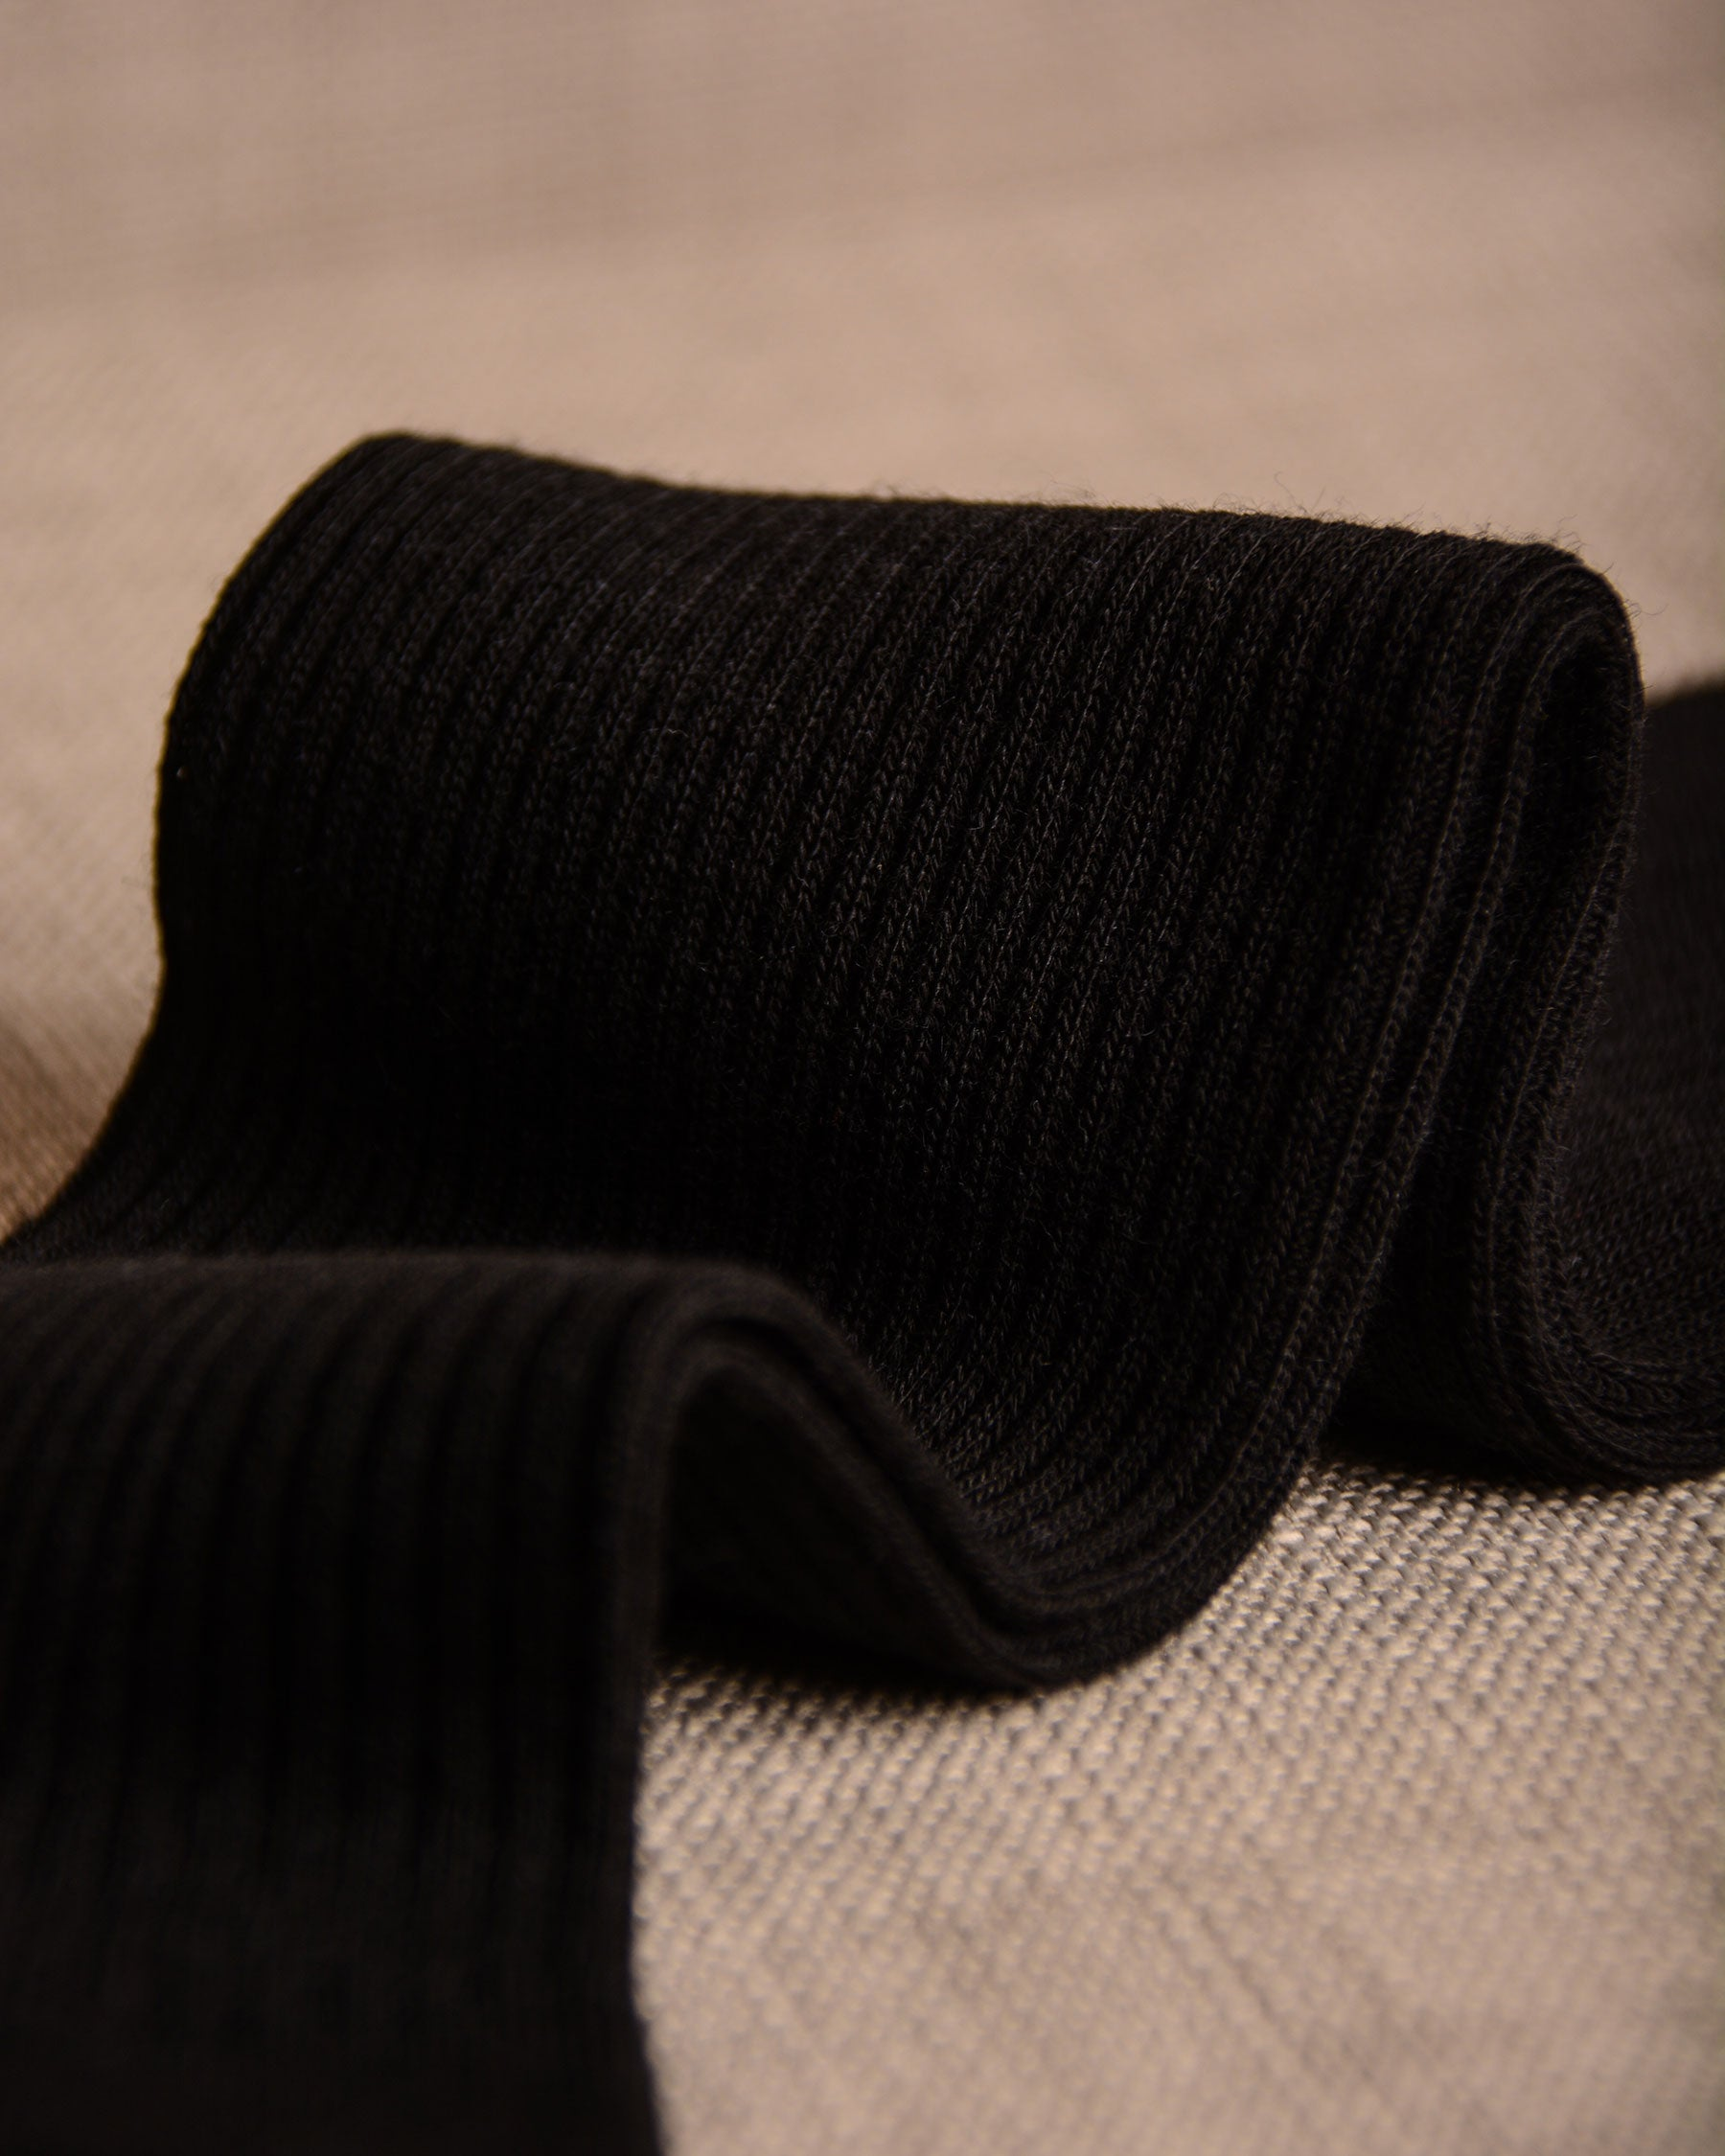 Pantherella Socks - Wool Black